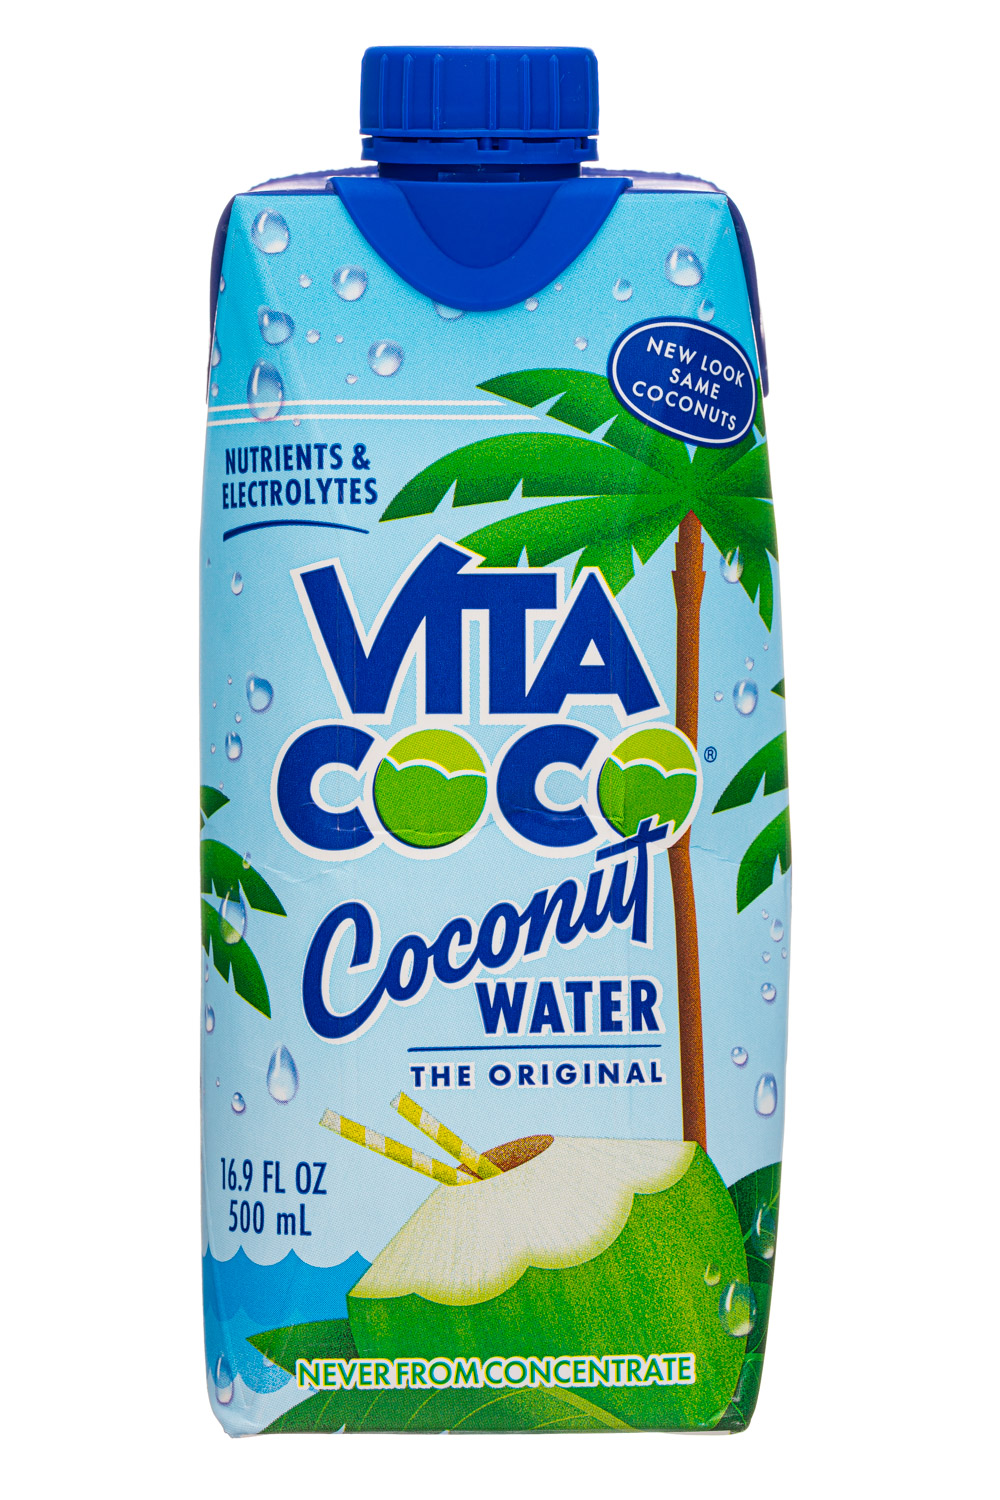 Coconut Water - The Original (carton)